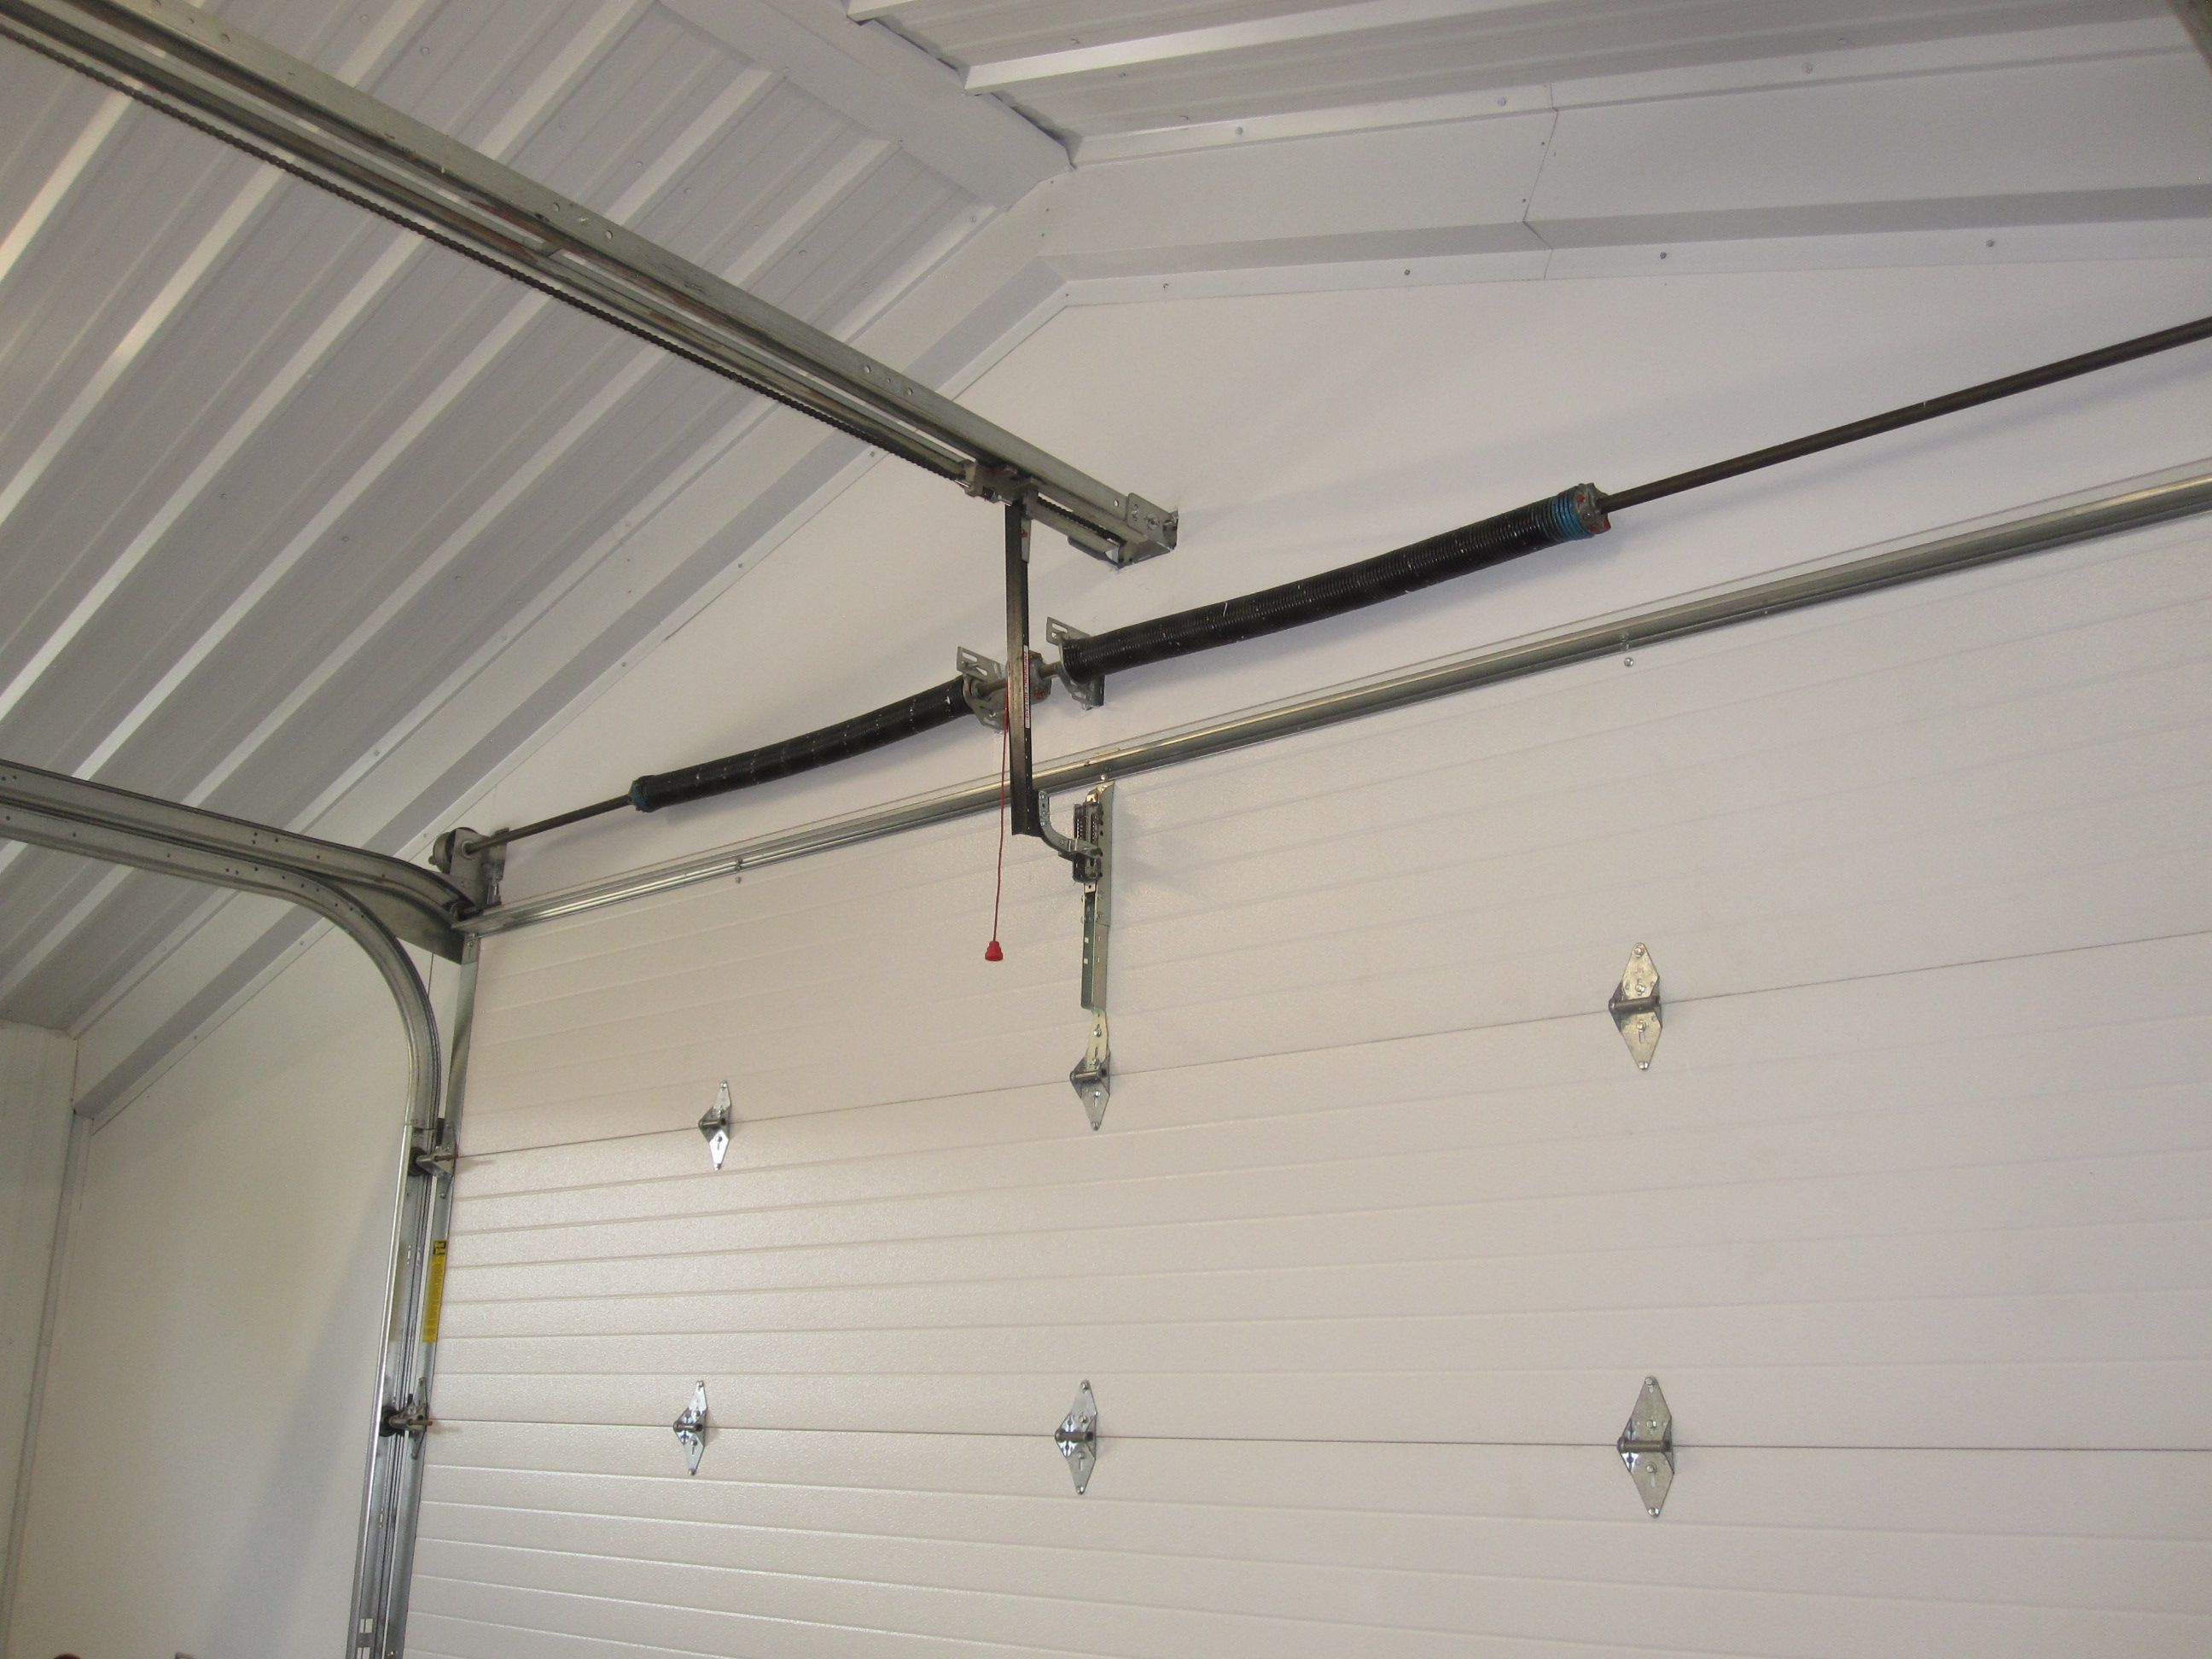 Garage Door Low Headroom Call Metal Building Outlet At 1 800 486 8415 To Learn More About Overhead Metal Shop Building Metal Garage Doors Metal Building Kits